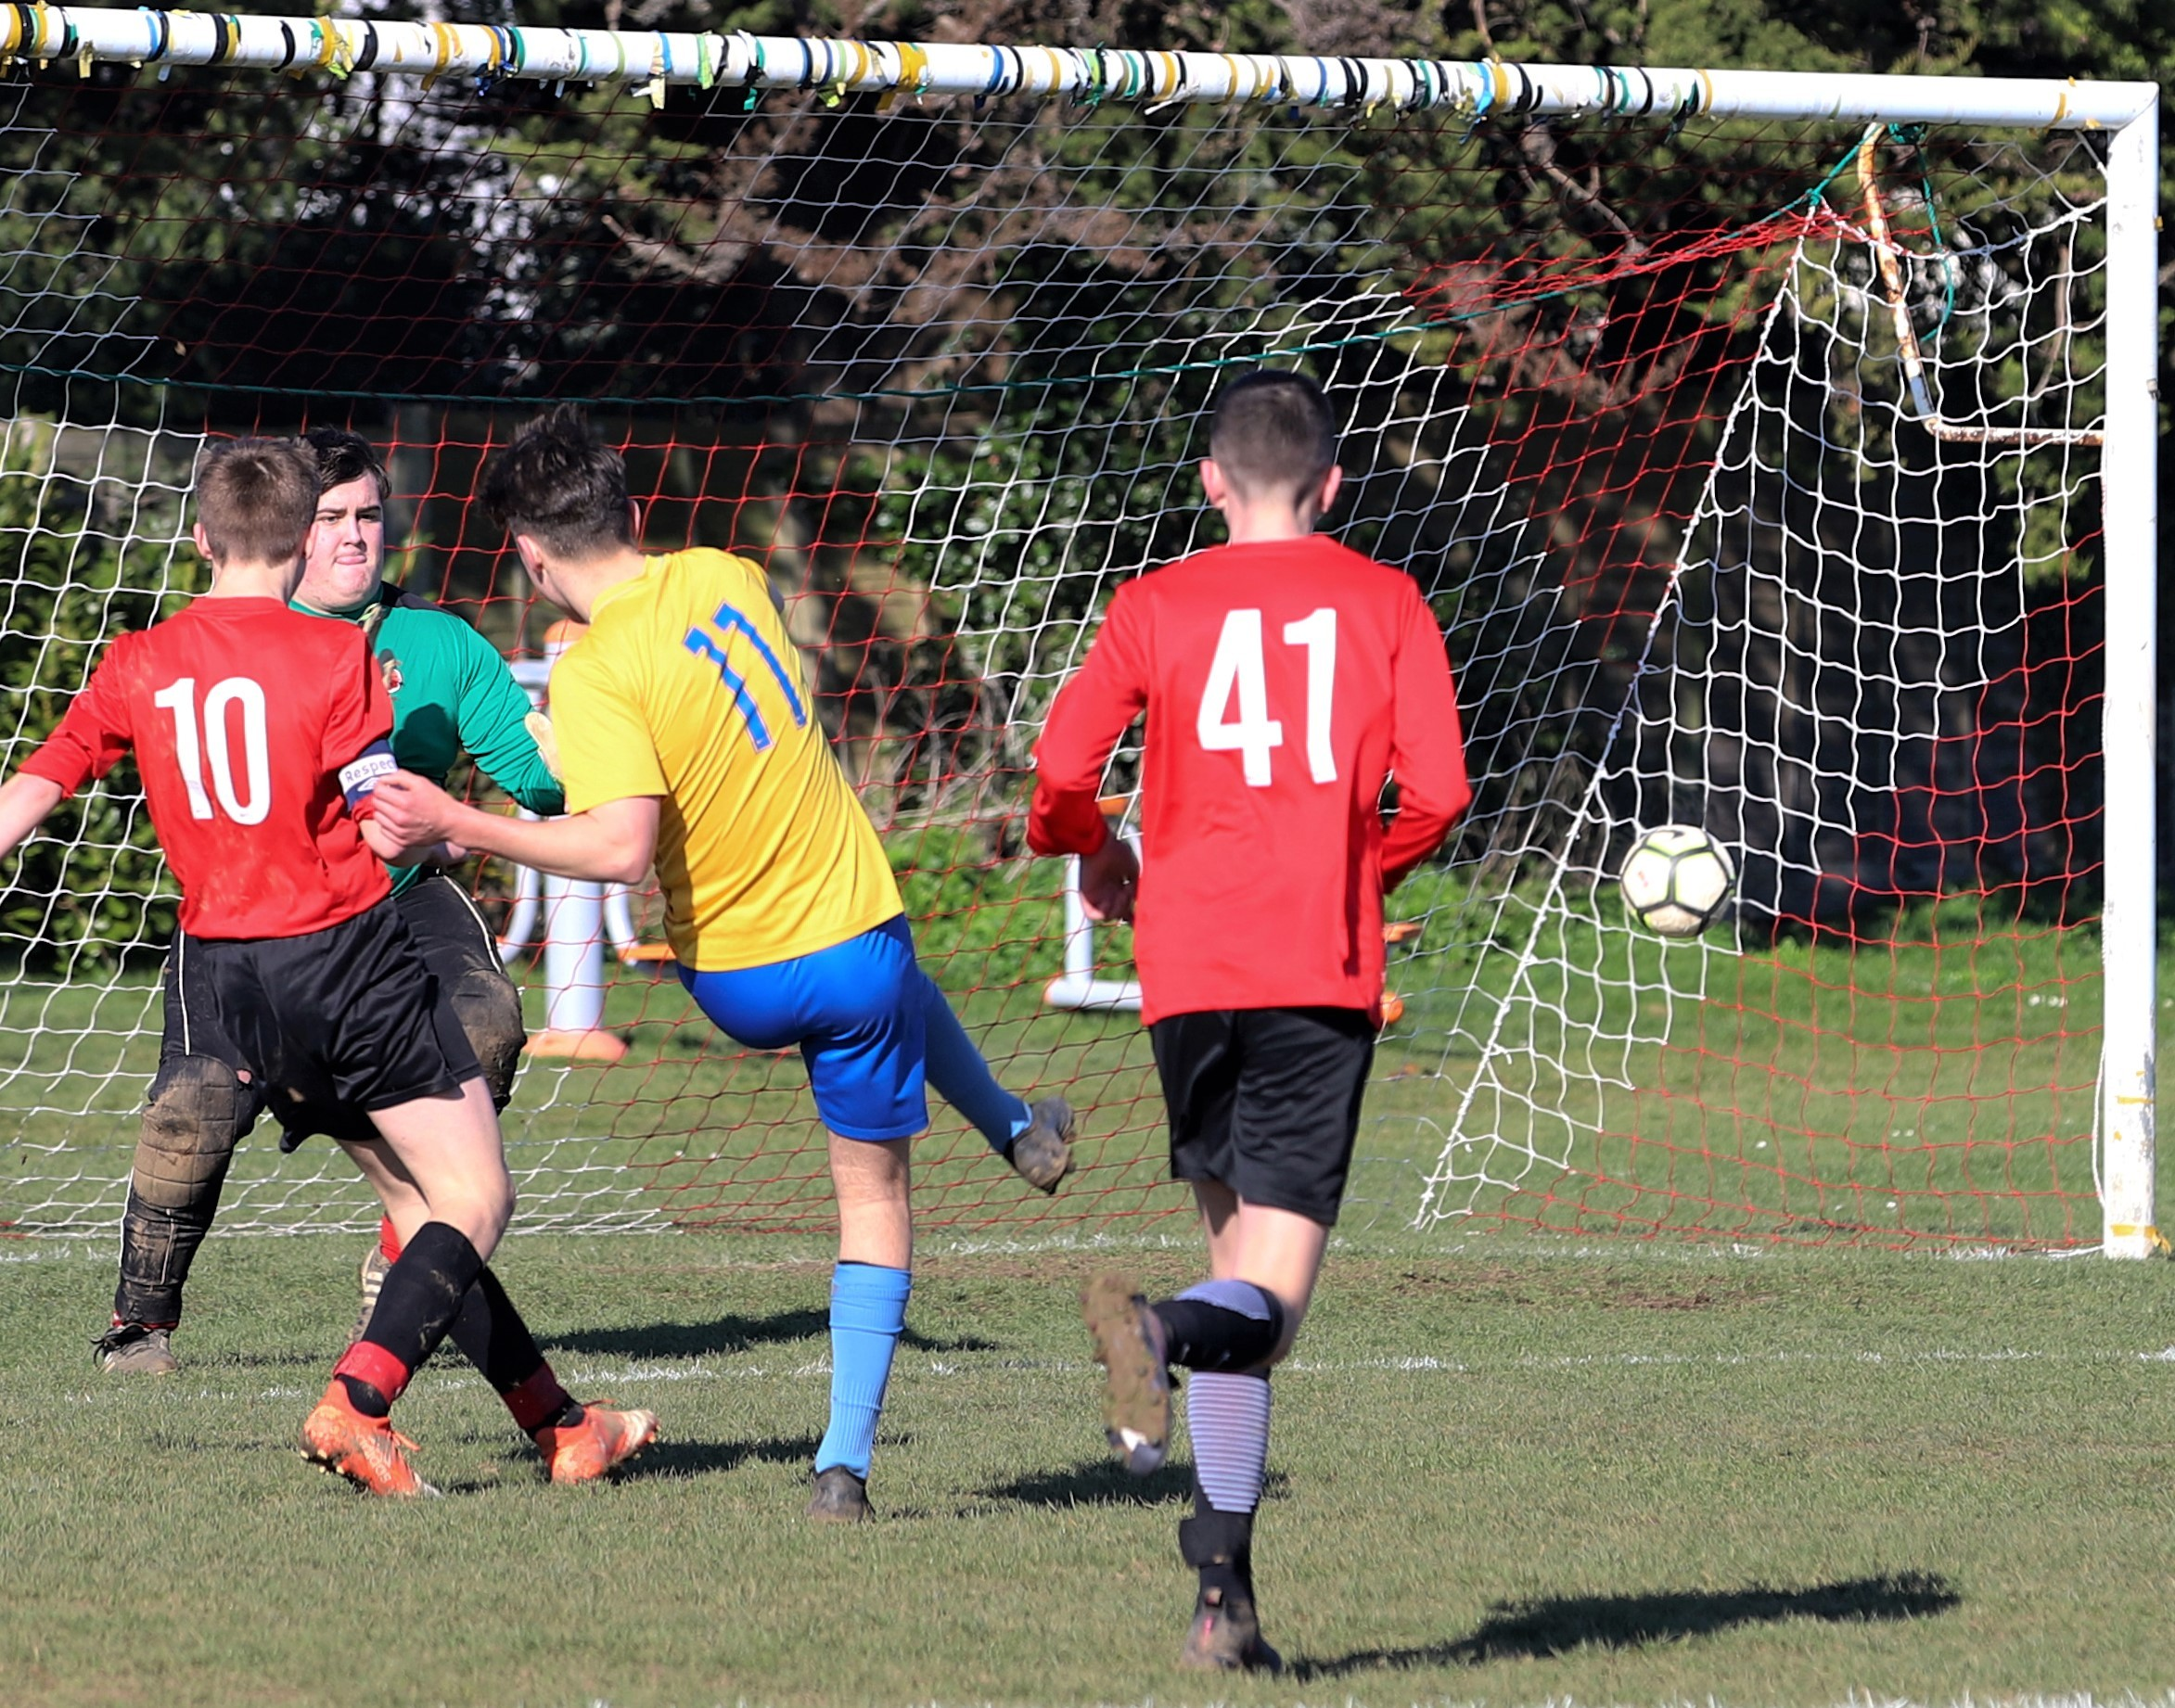 Newport's Ben Snow (in yellow) fires home against Brading in the IW U16 Cup semi-final at Steyne Park, Bembridge.  Photos: Paul Blackley